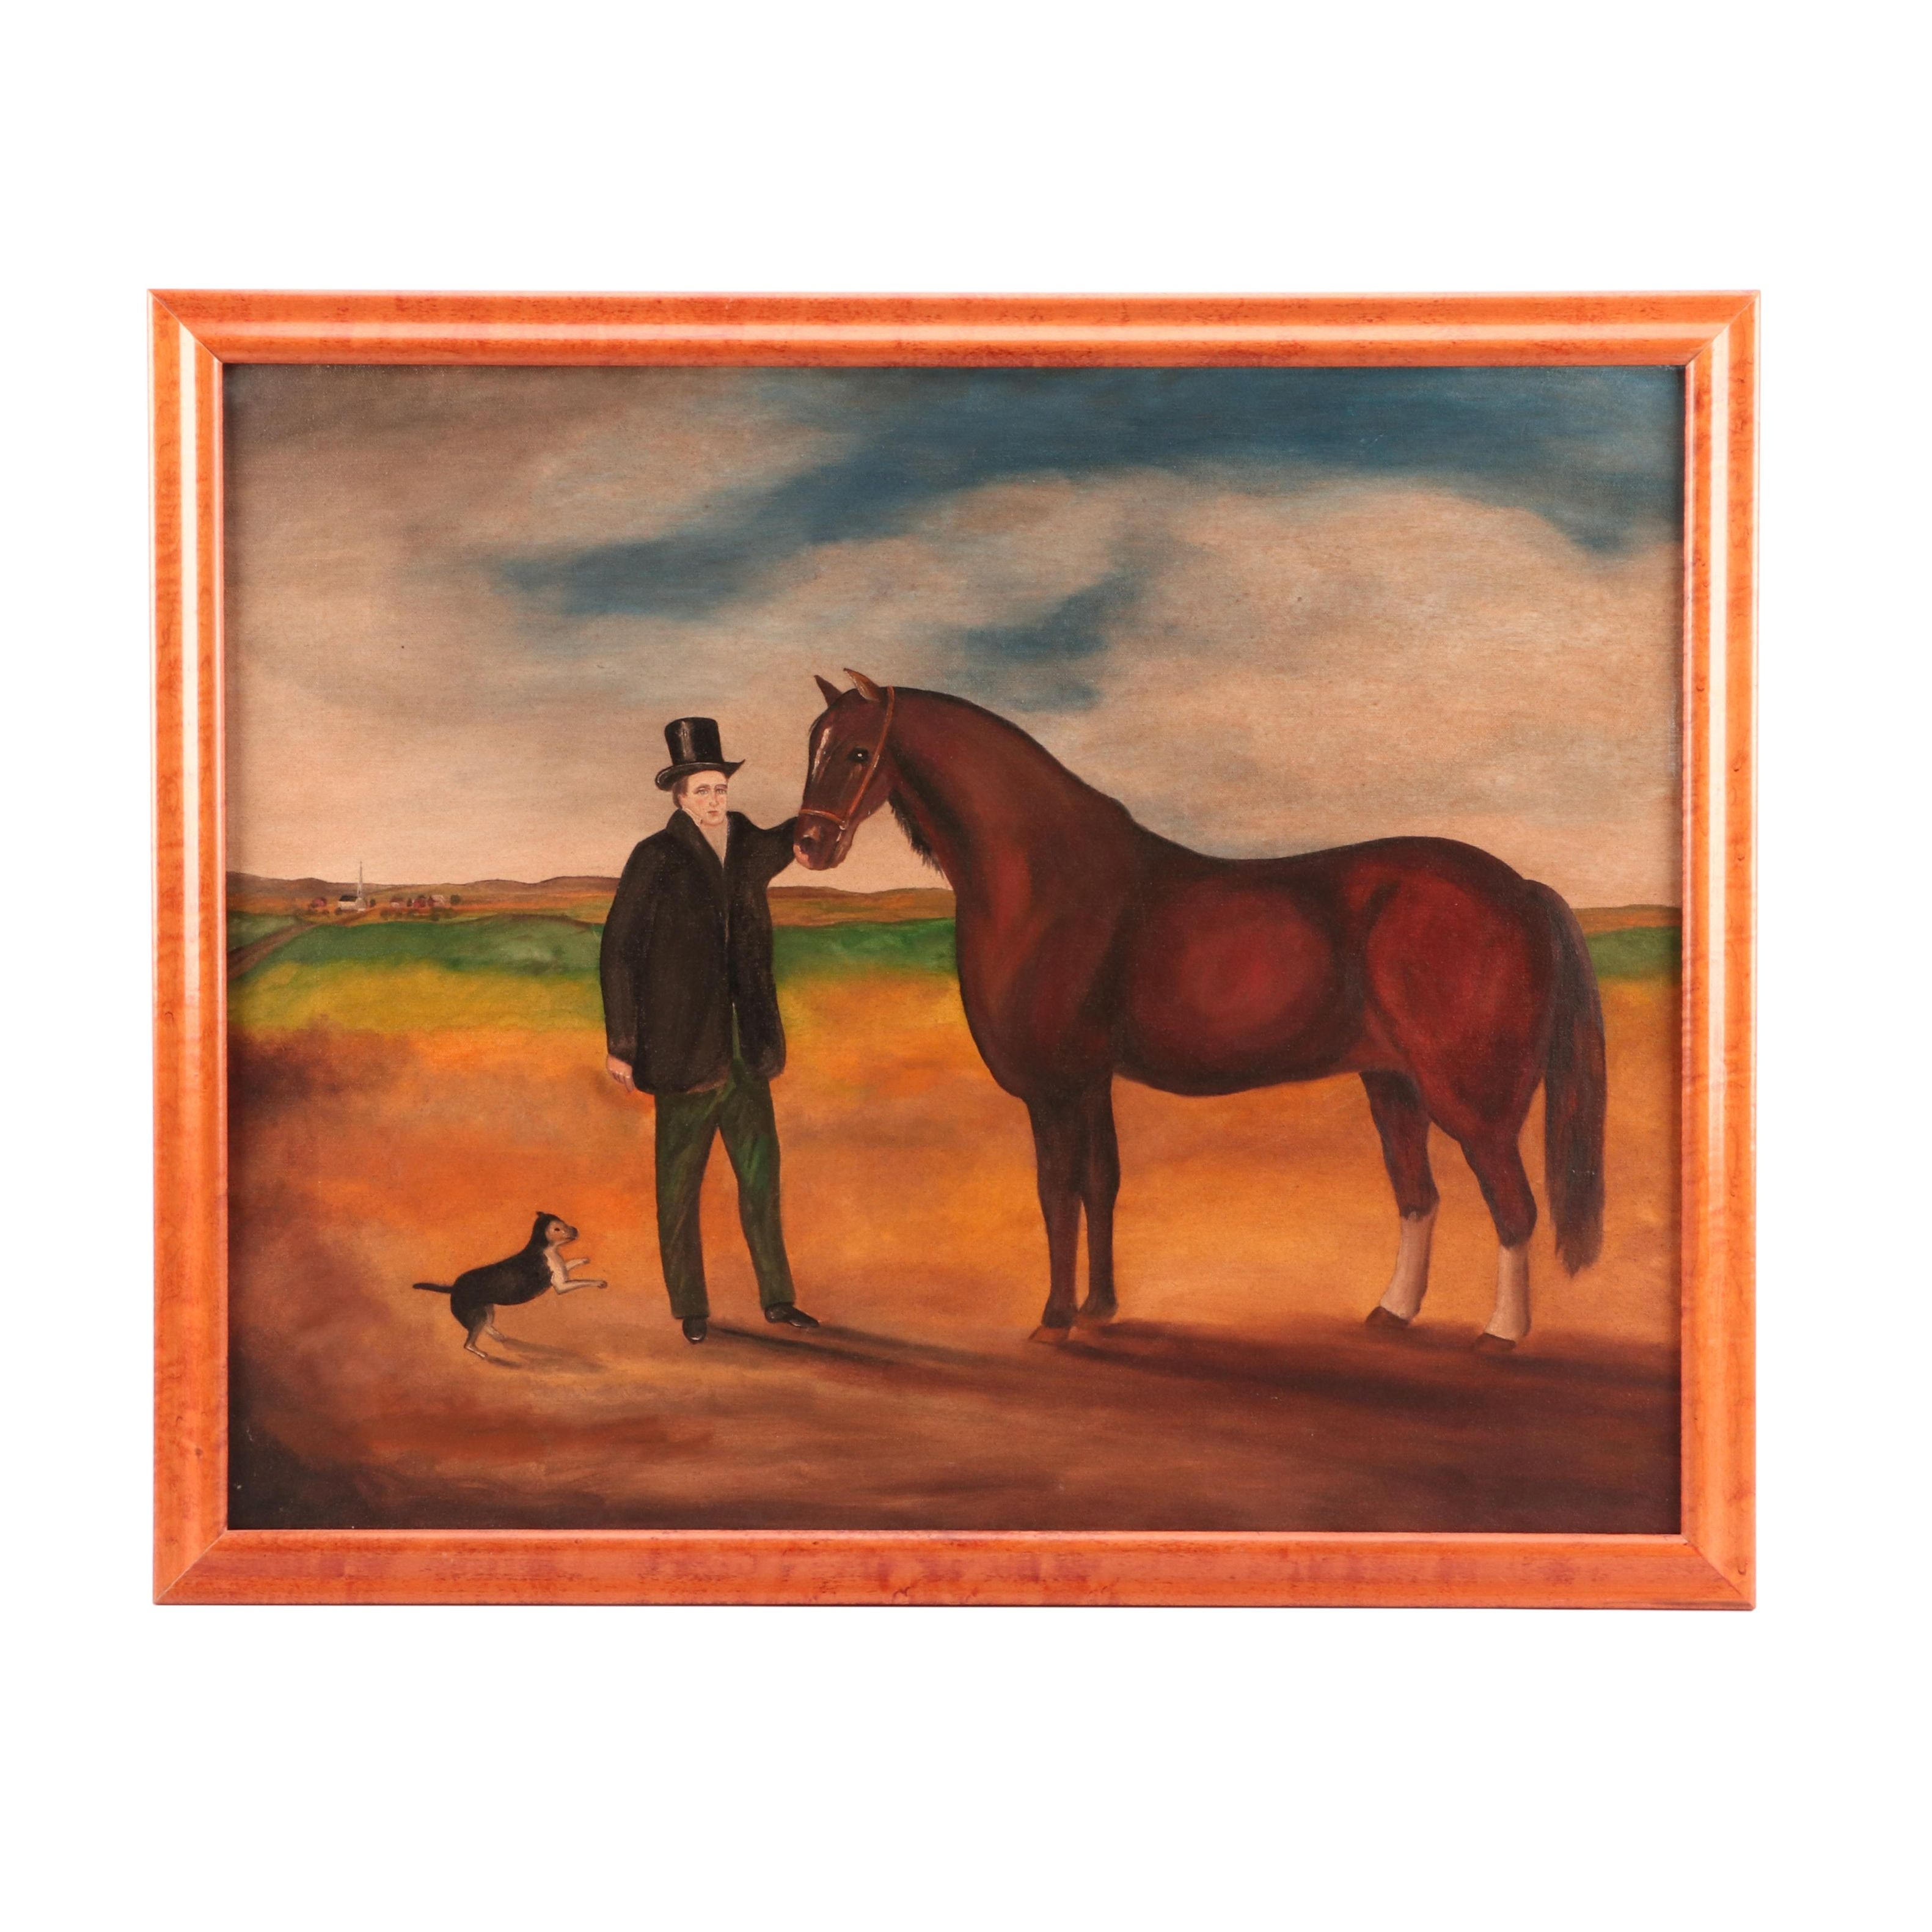 Mid to Late 20th-Century Naïve Oil Painting of Man and Horse